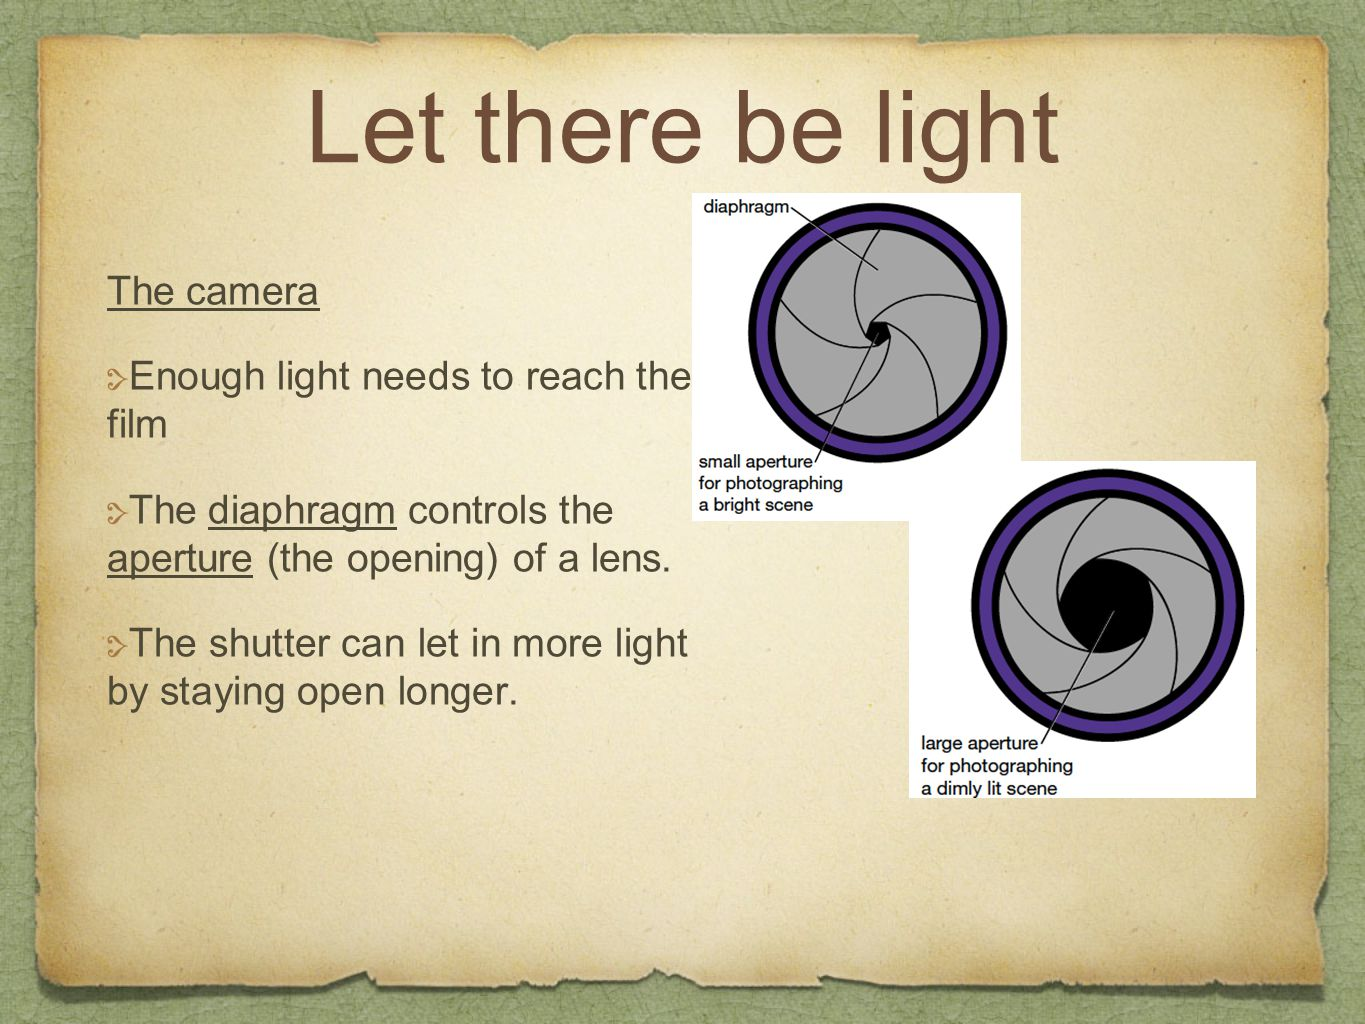 Let there be light The camera Enough light needs to reach the film The diaphragm controls the aperture (the opening) of a lens. The shutter can let in